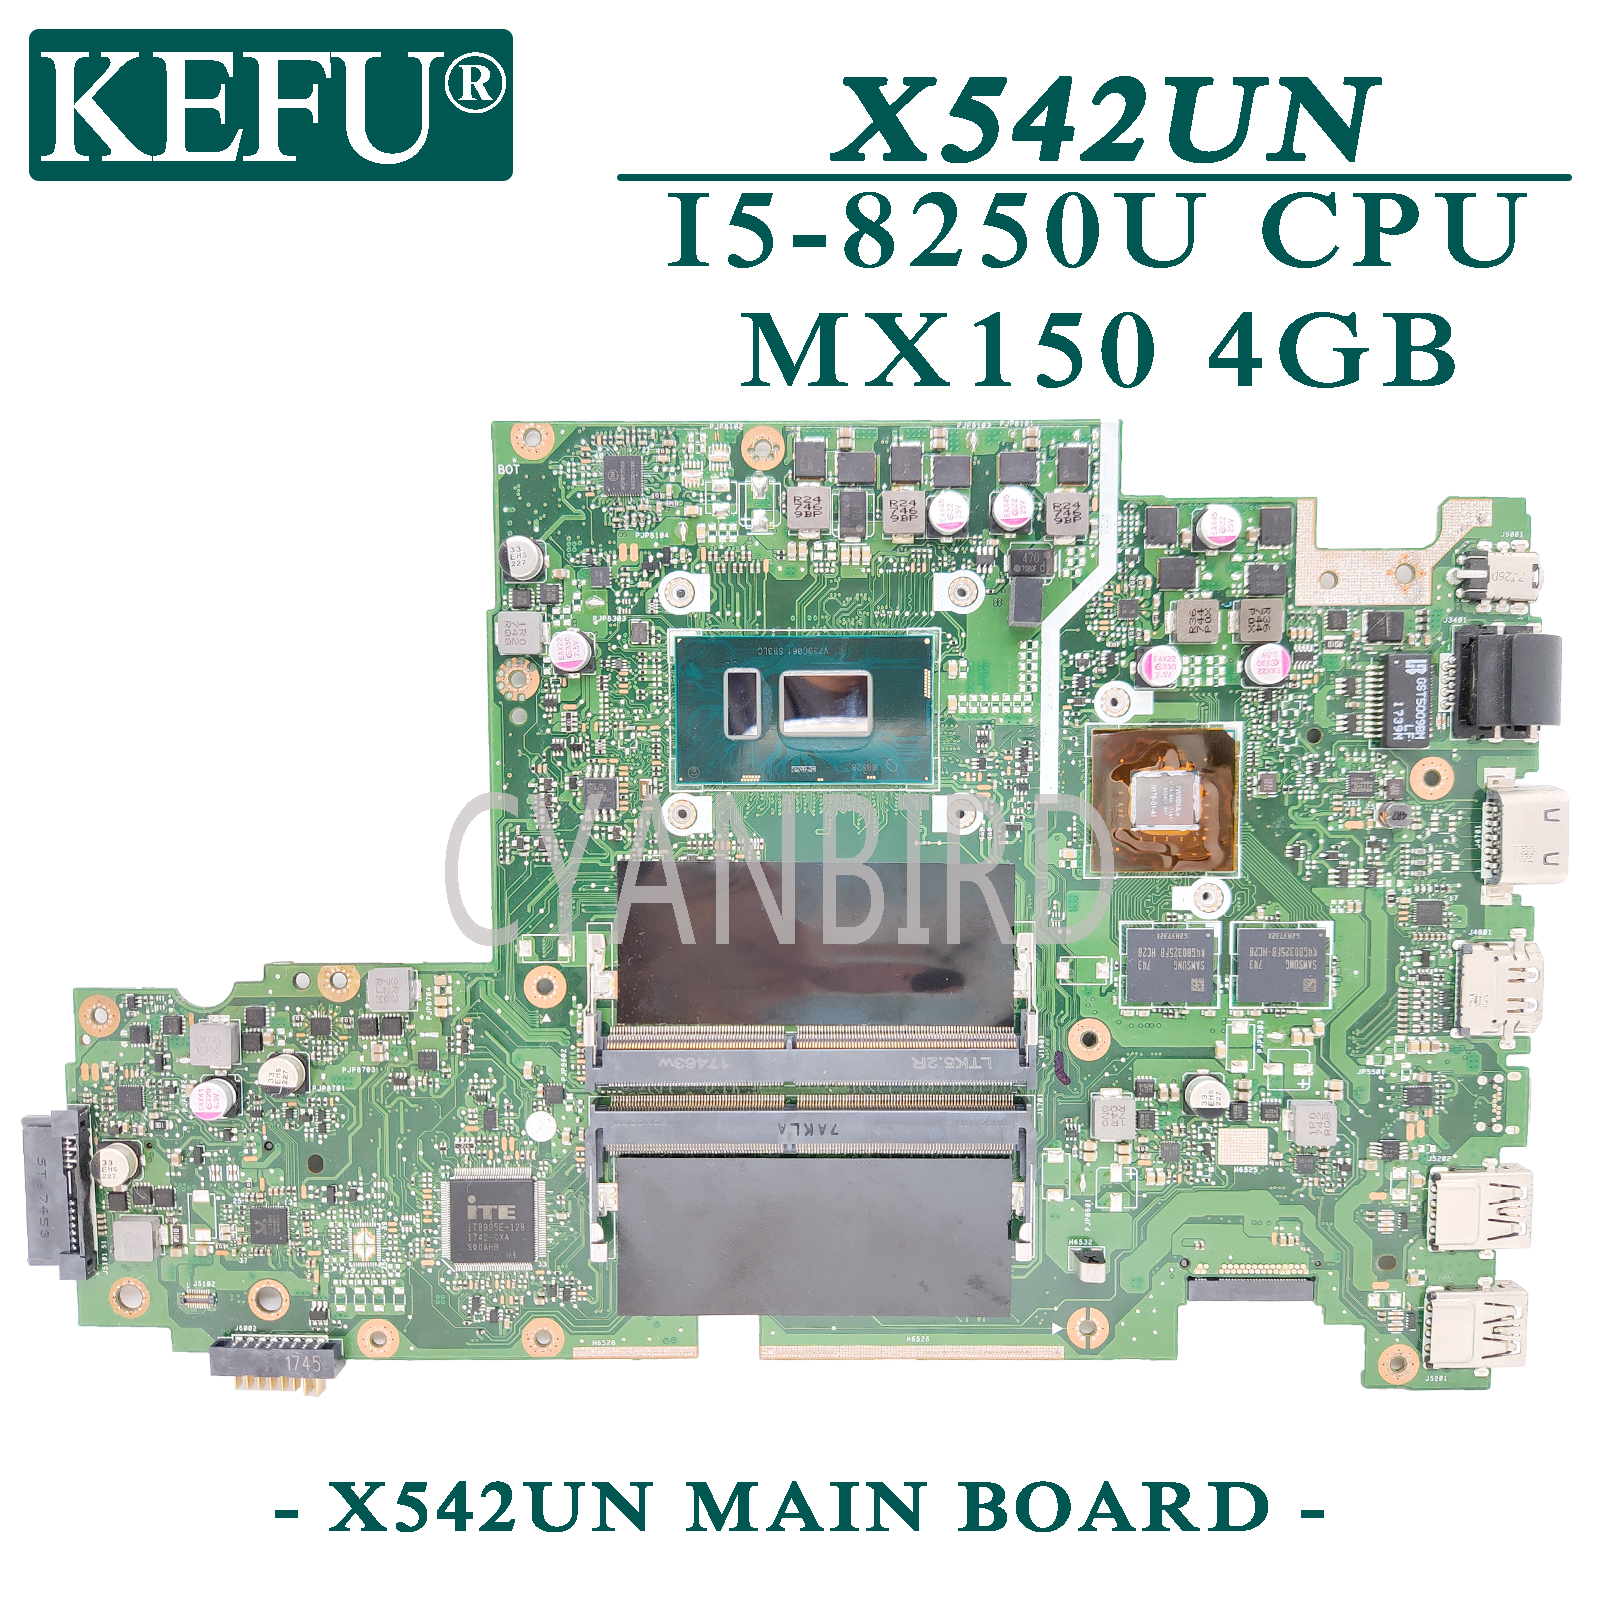 KEFU X542UN original mainboard for ASUS VivoBook X542UN X542UR X542UQ X542U FL8000U with I5-8250U <font><b>MX150</b></font>-4GB <font><b>Laptop</b></font> motherboard image